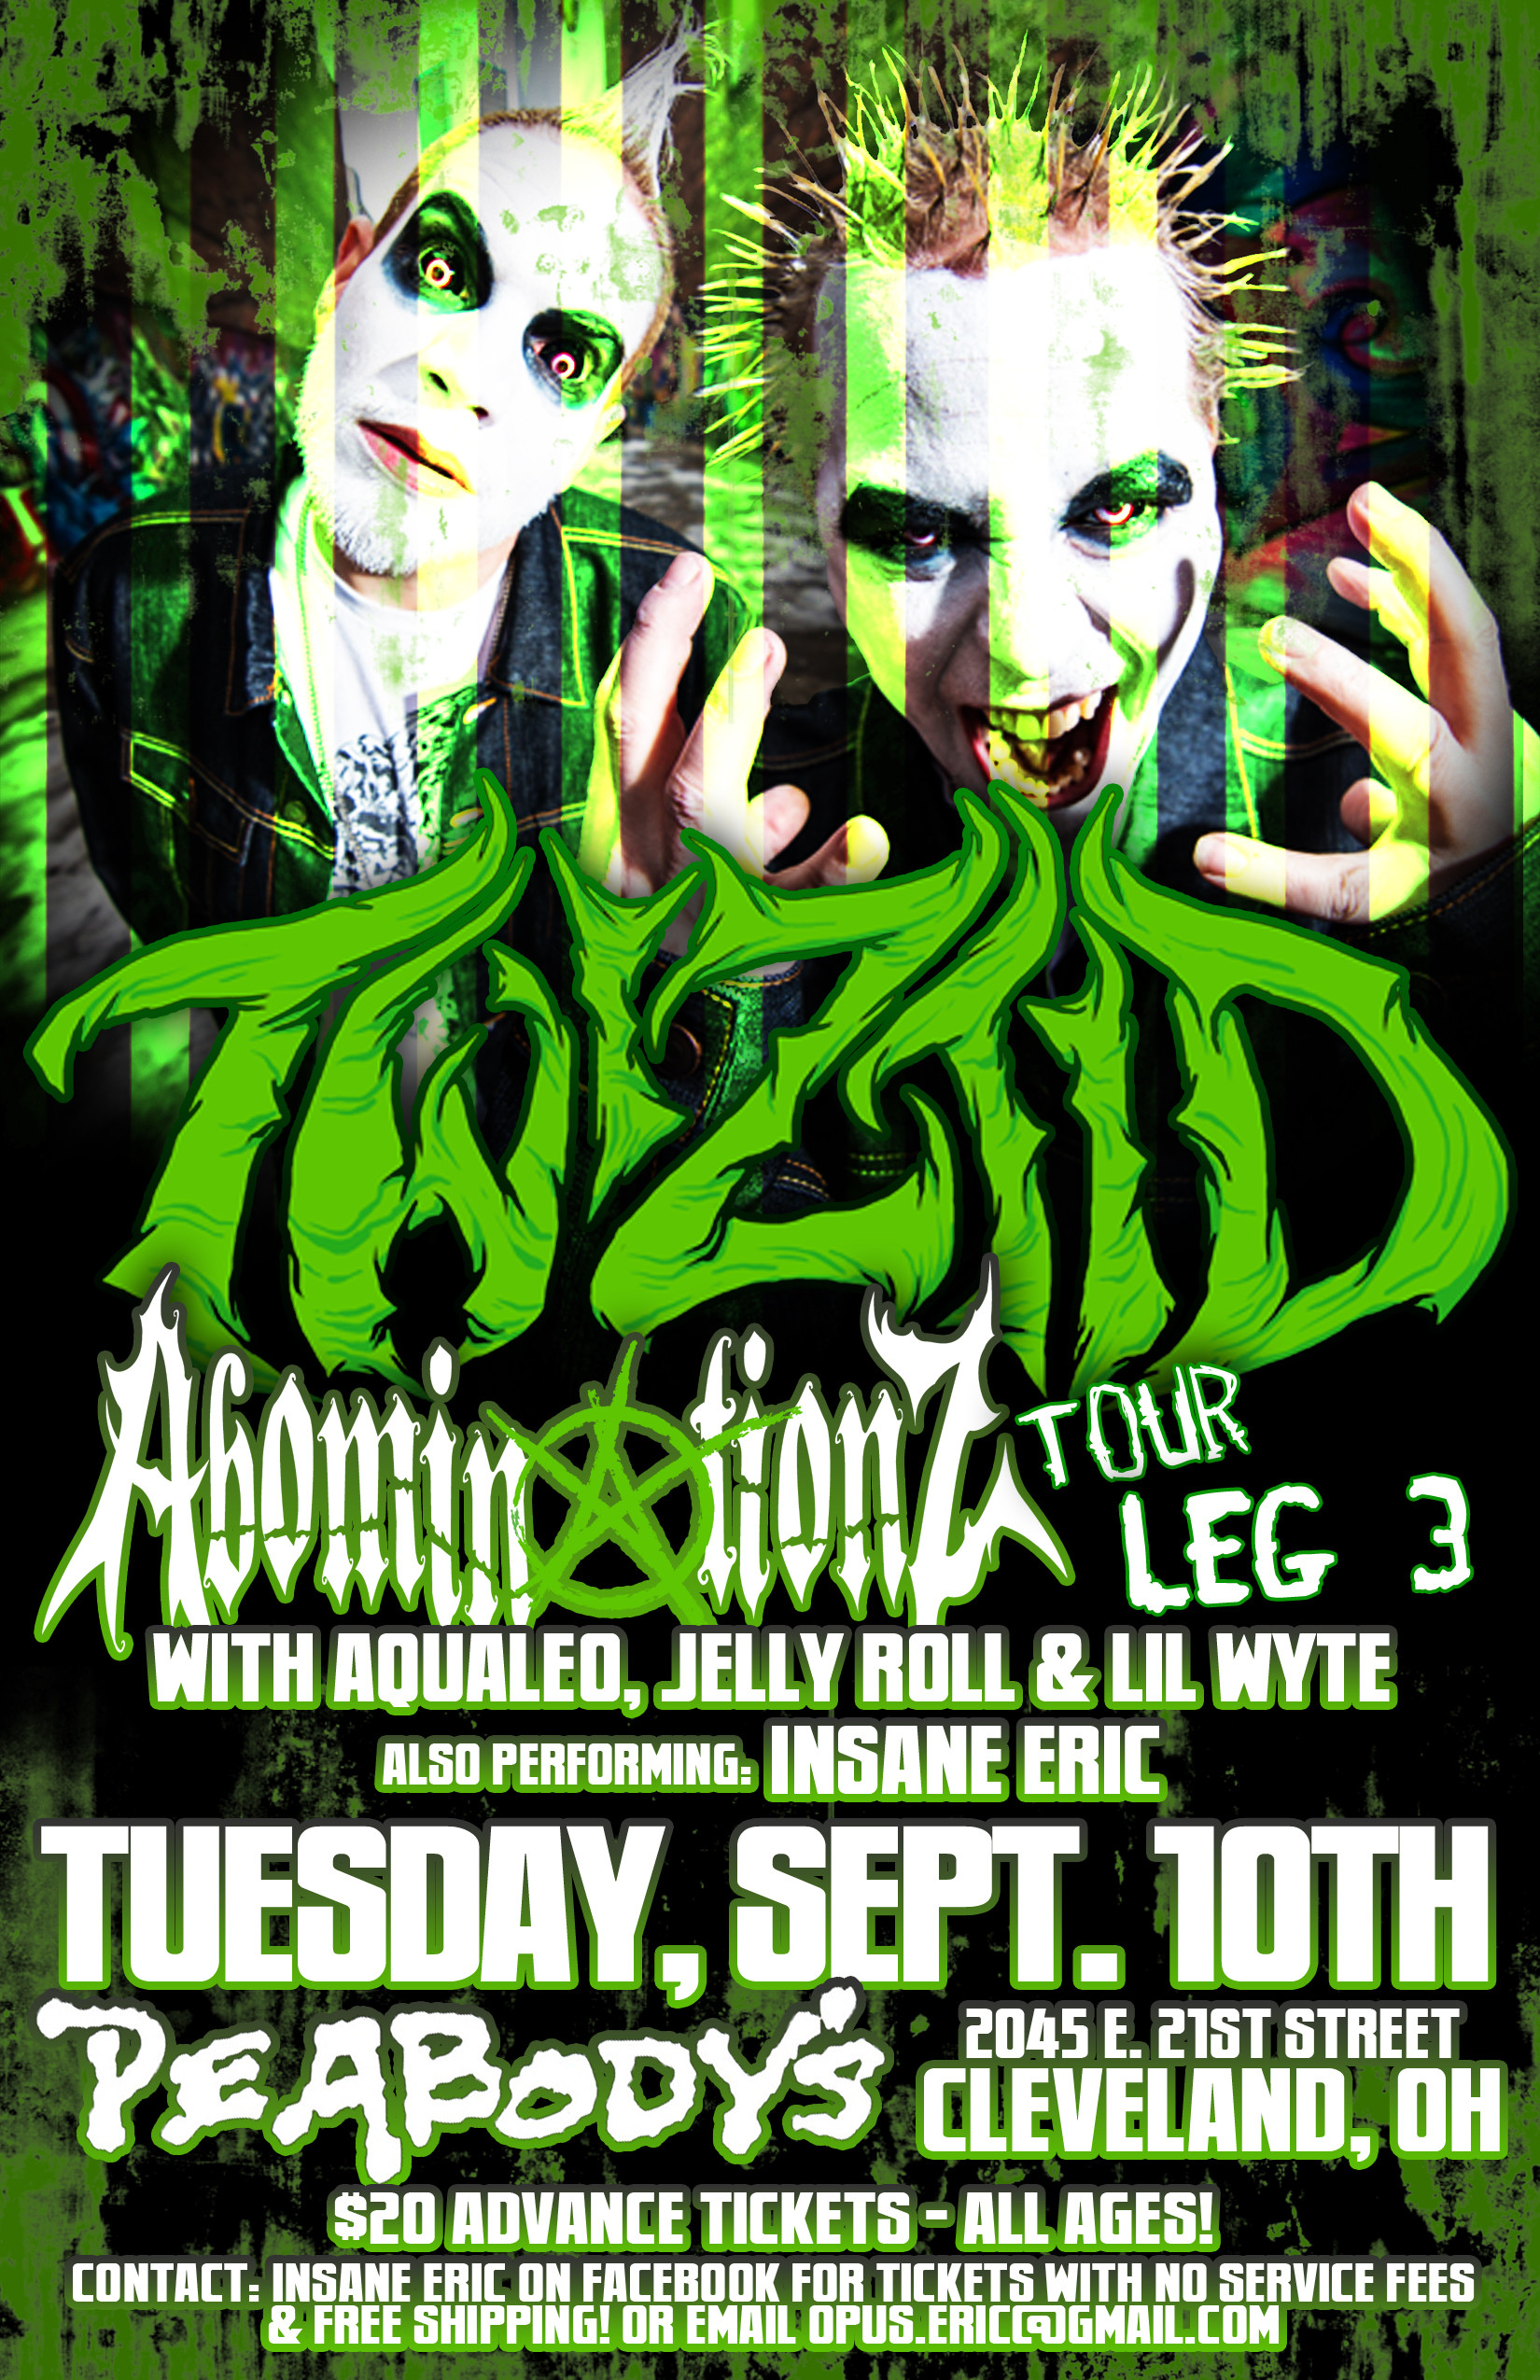 Tickets are selling fast for upcoming Cleveland Twiztid show!